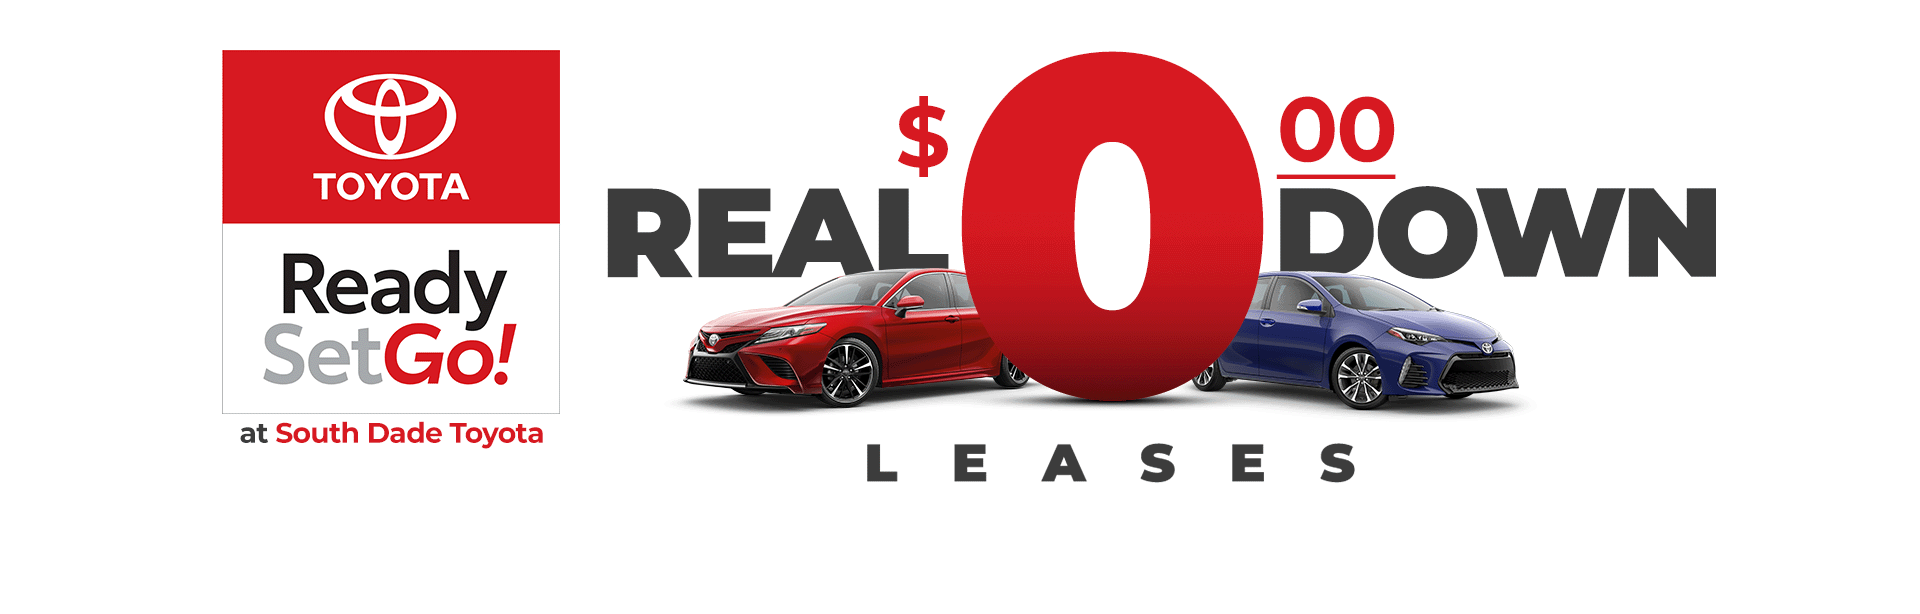 Real 0 DOWN Lease Offers